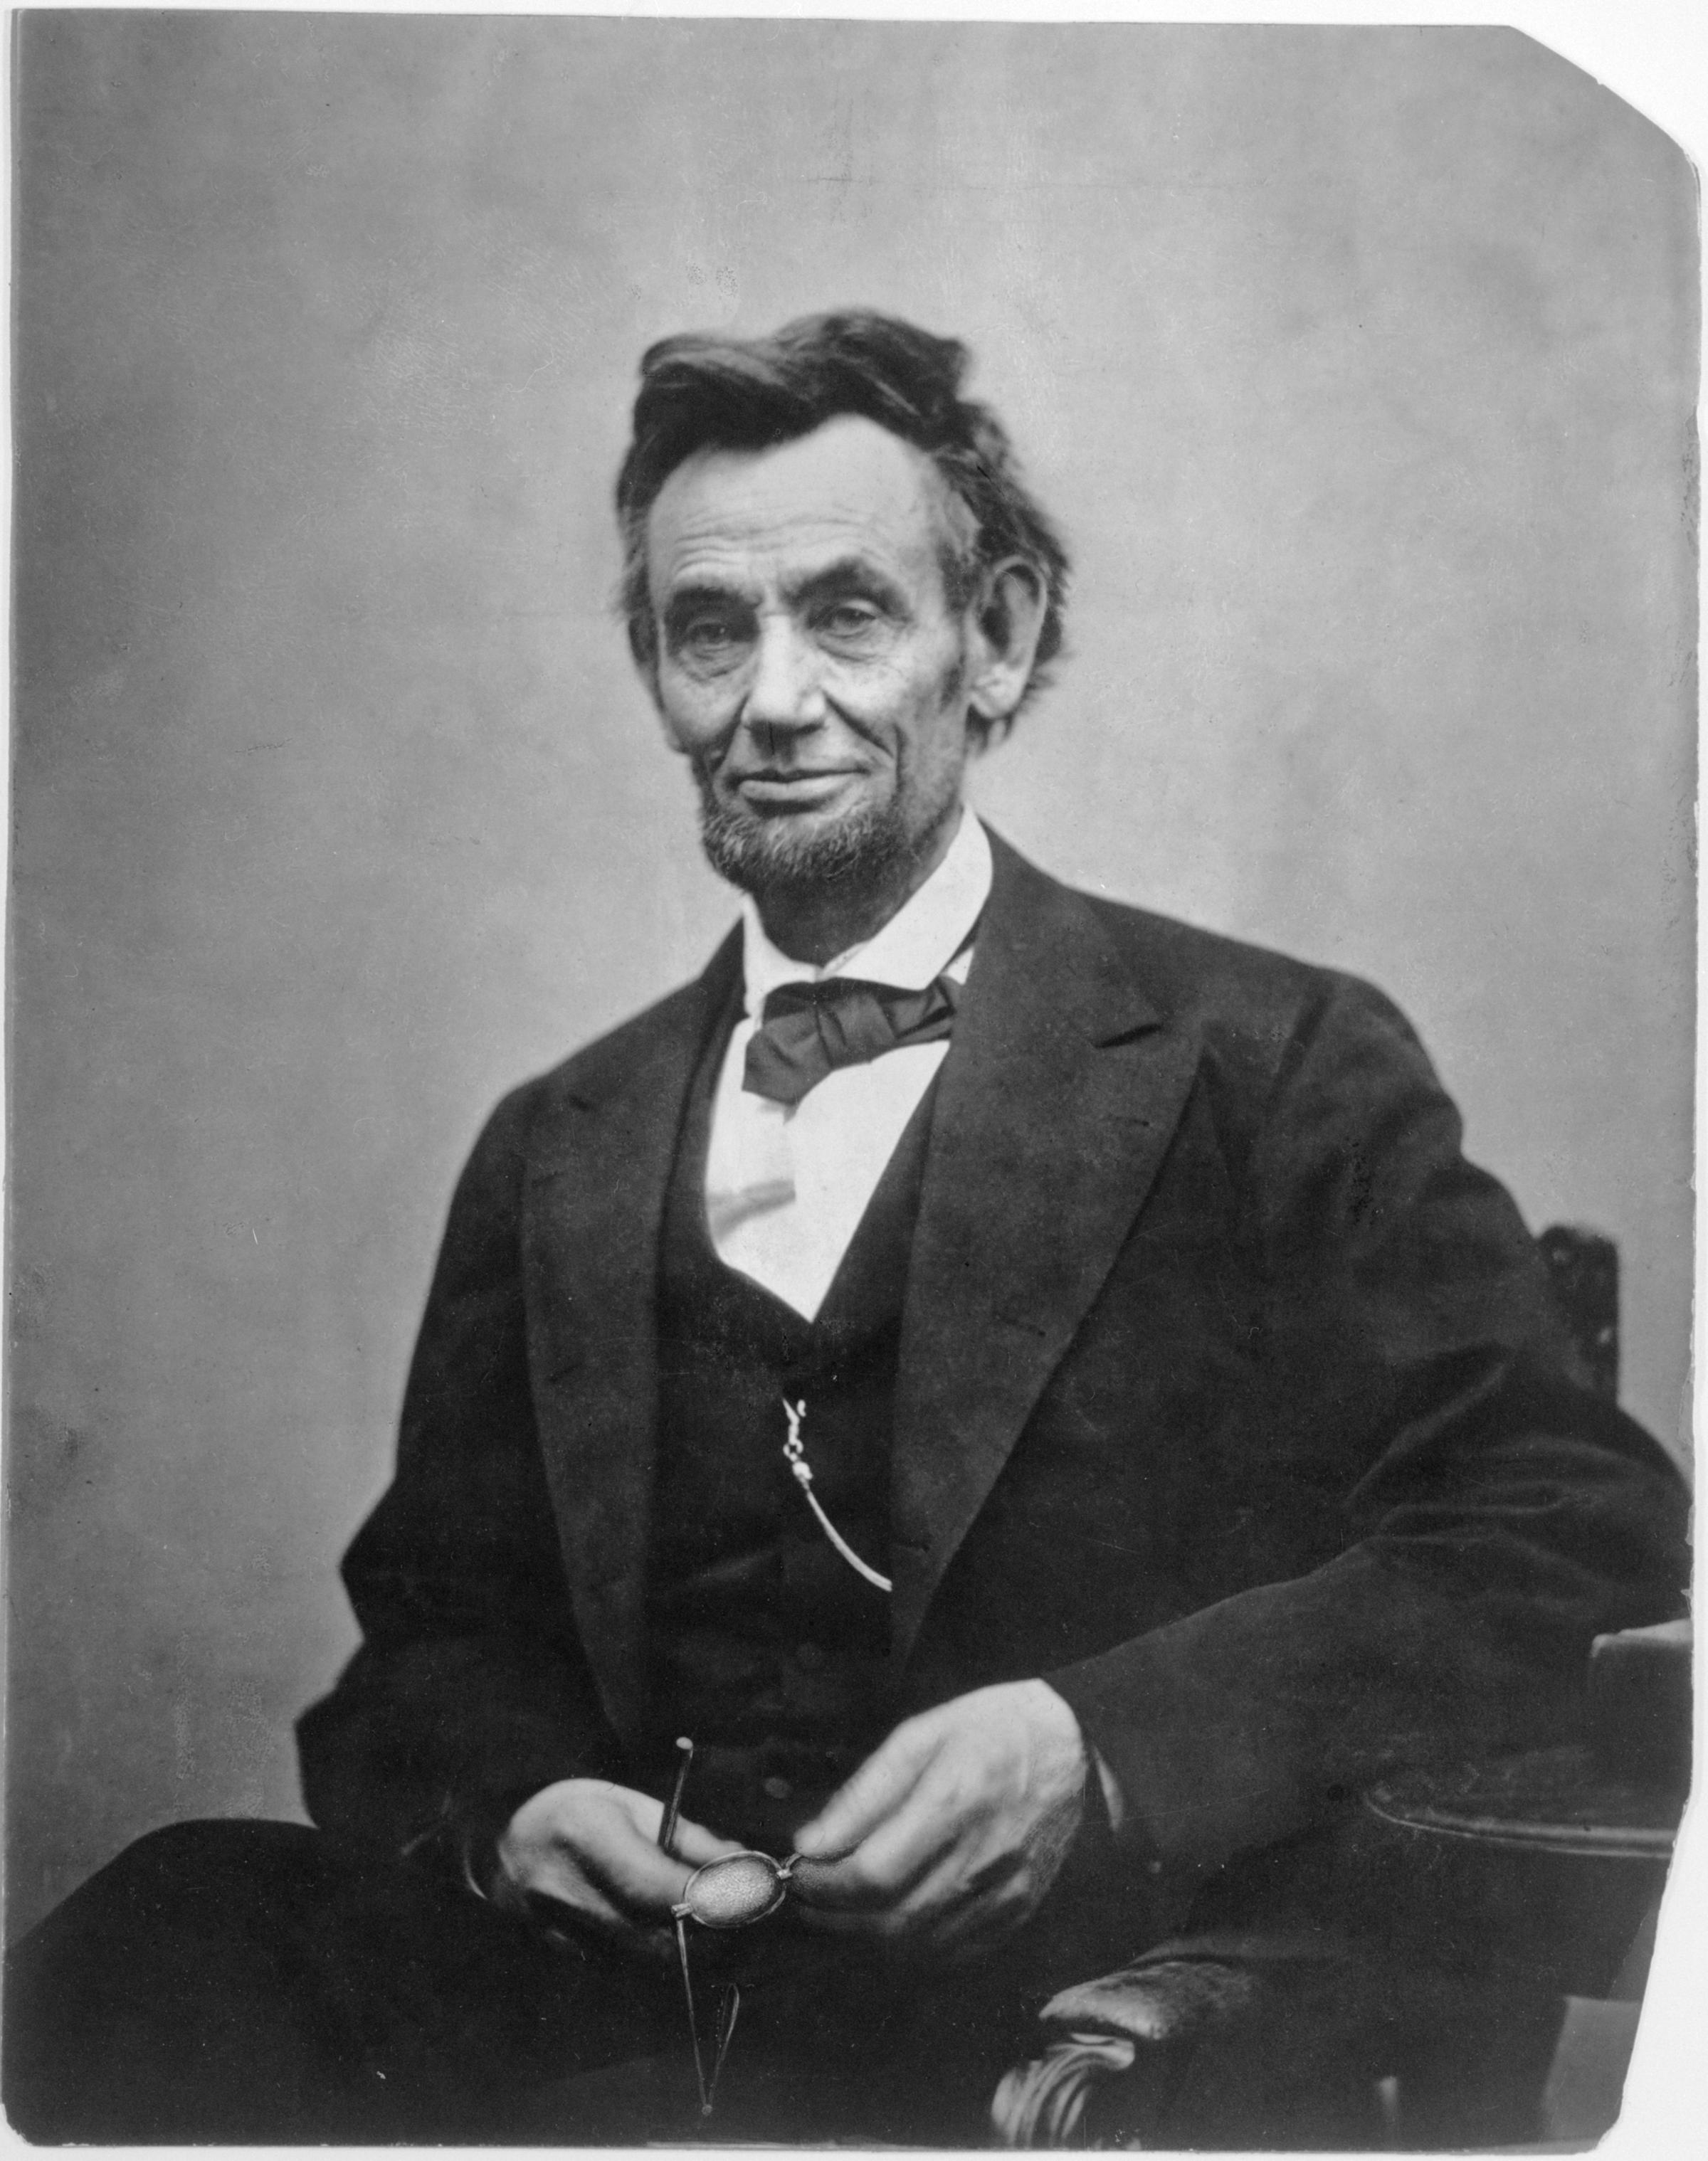 Beinecke Library At Yale Acquires Unmatched Lincoln